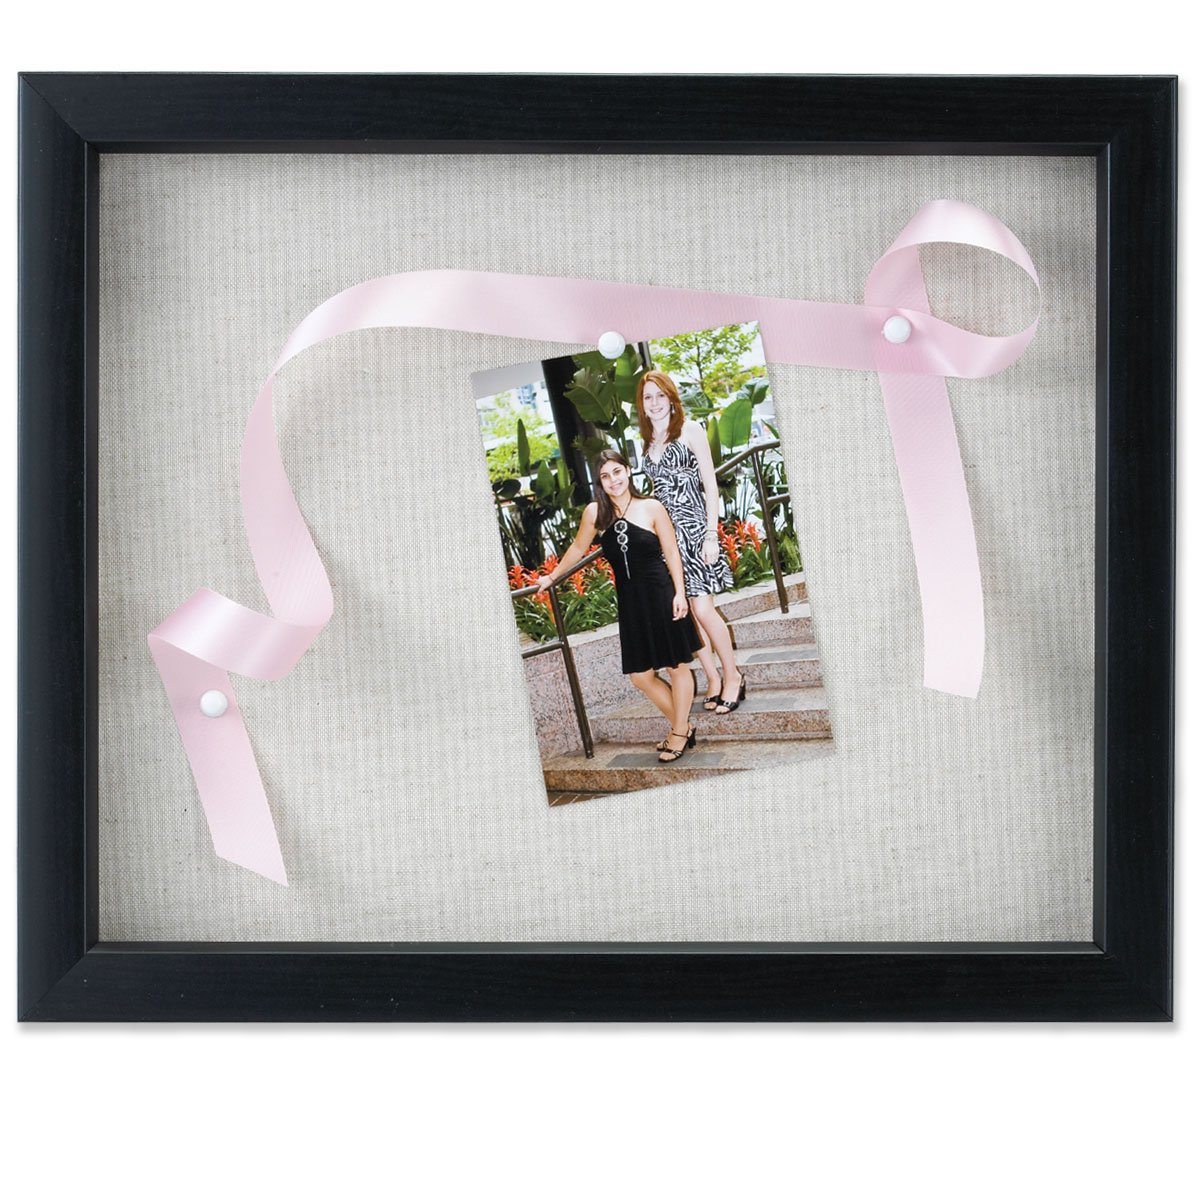 Lawrence Frames 11 by 14-Inch Black Shadow Box Frame, Linen Inner Display Board by Lawrence Frames